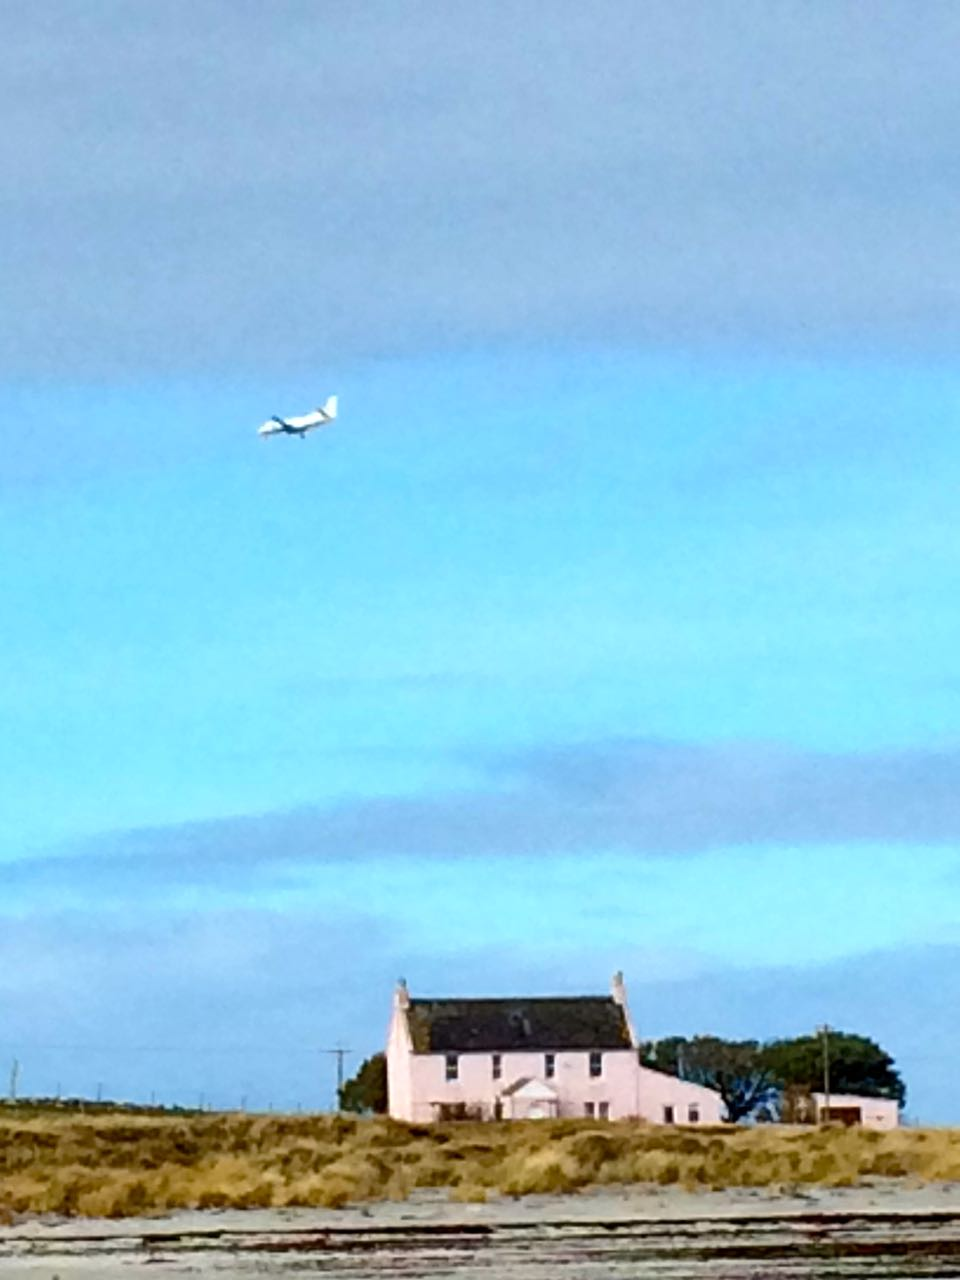 Noon arrival of Loganair's daily flight to Tiree from Glasgow